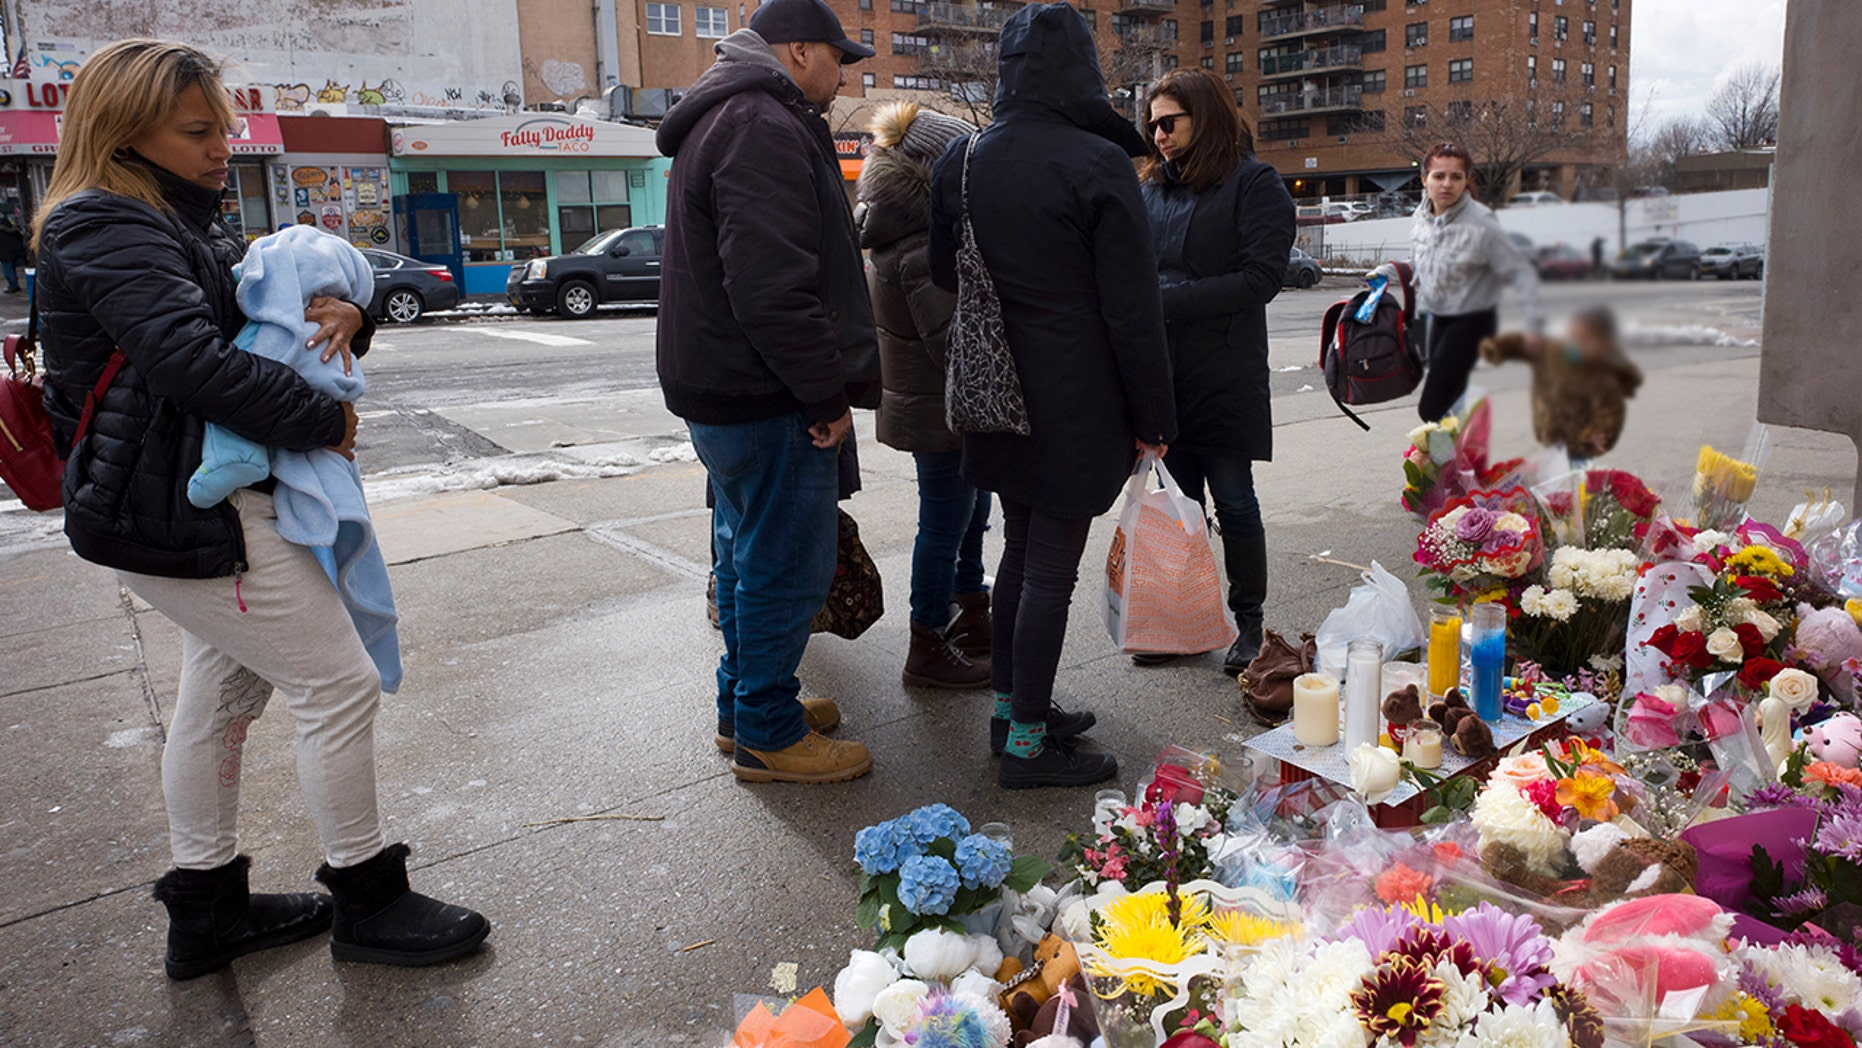 In this March 8, 2018 file photo, people gather at a sidewalk memorial for two children who were killed the previous week when they were struck by a car driven by a woman who likely had a seizure behind the wheel, in the Park Slope neighborhood of the Brooklyn borough of New York. Dorothy Bruns was found dead in her home in Staten Island borough of New York on Tuesday, Nov. 6.